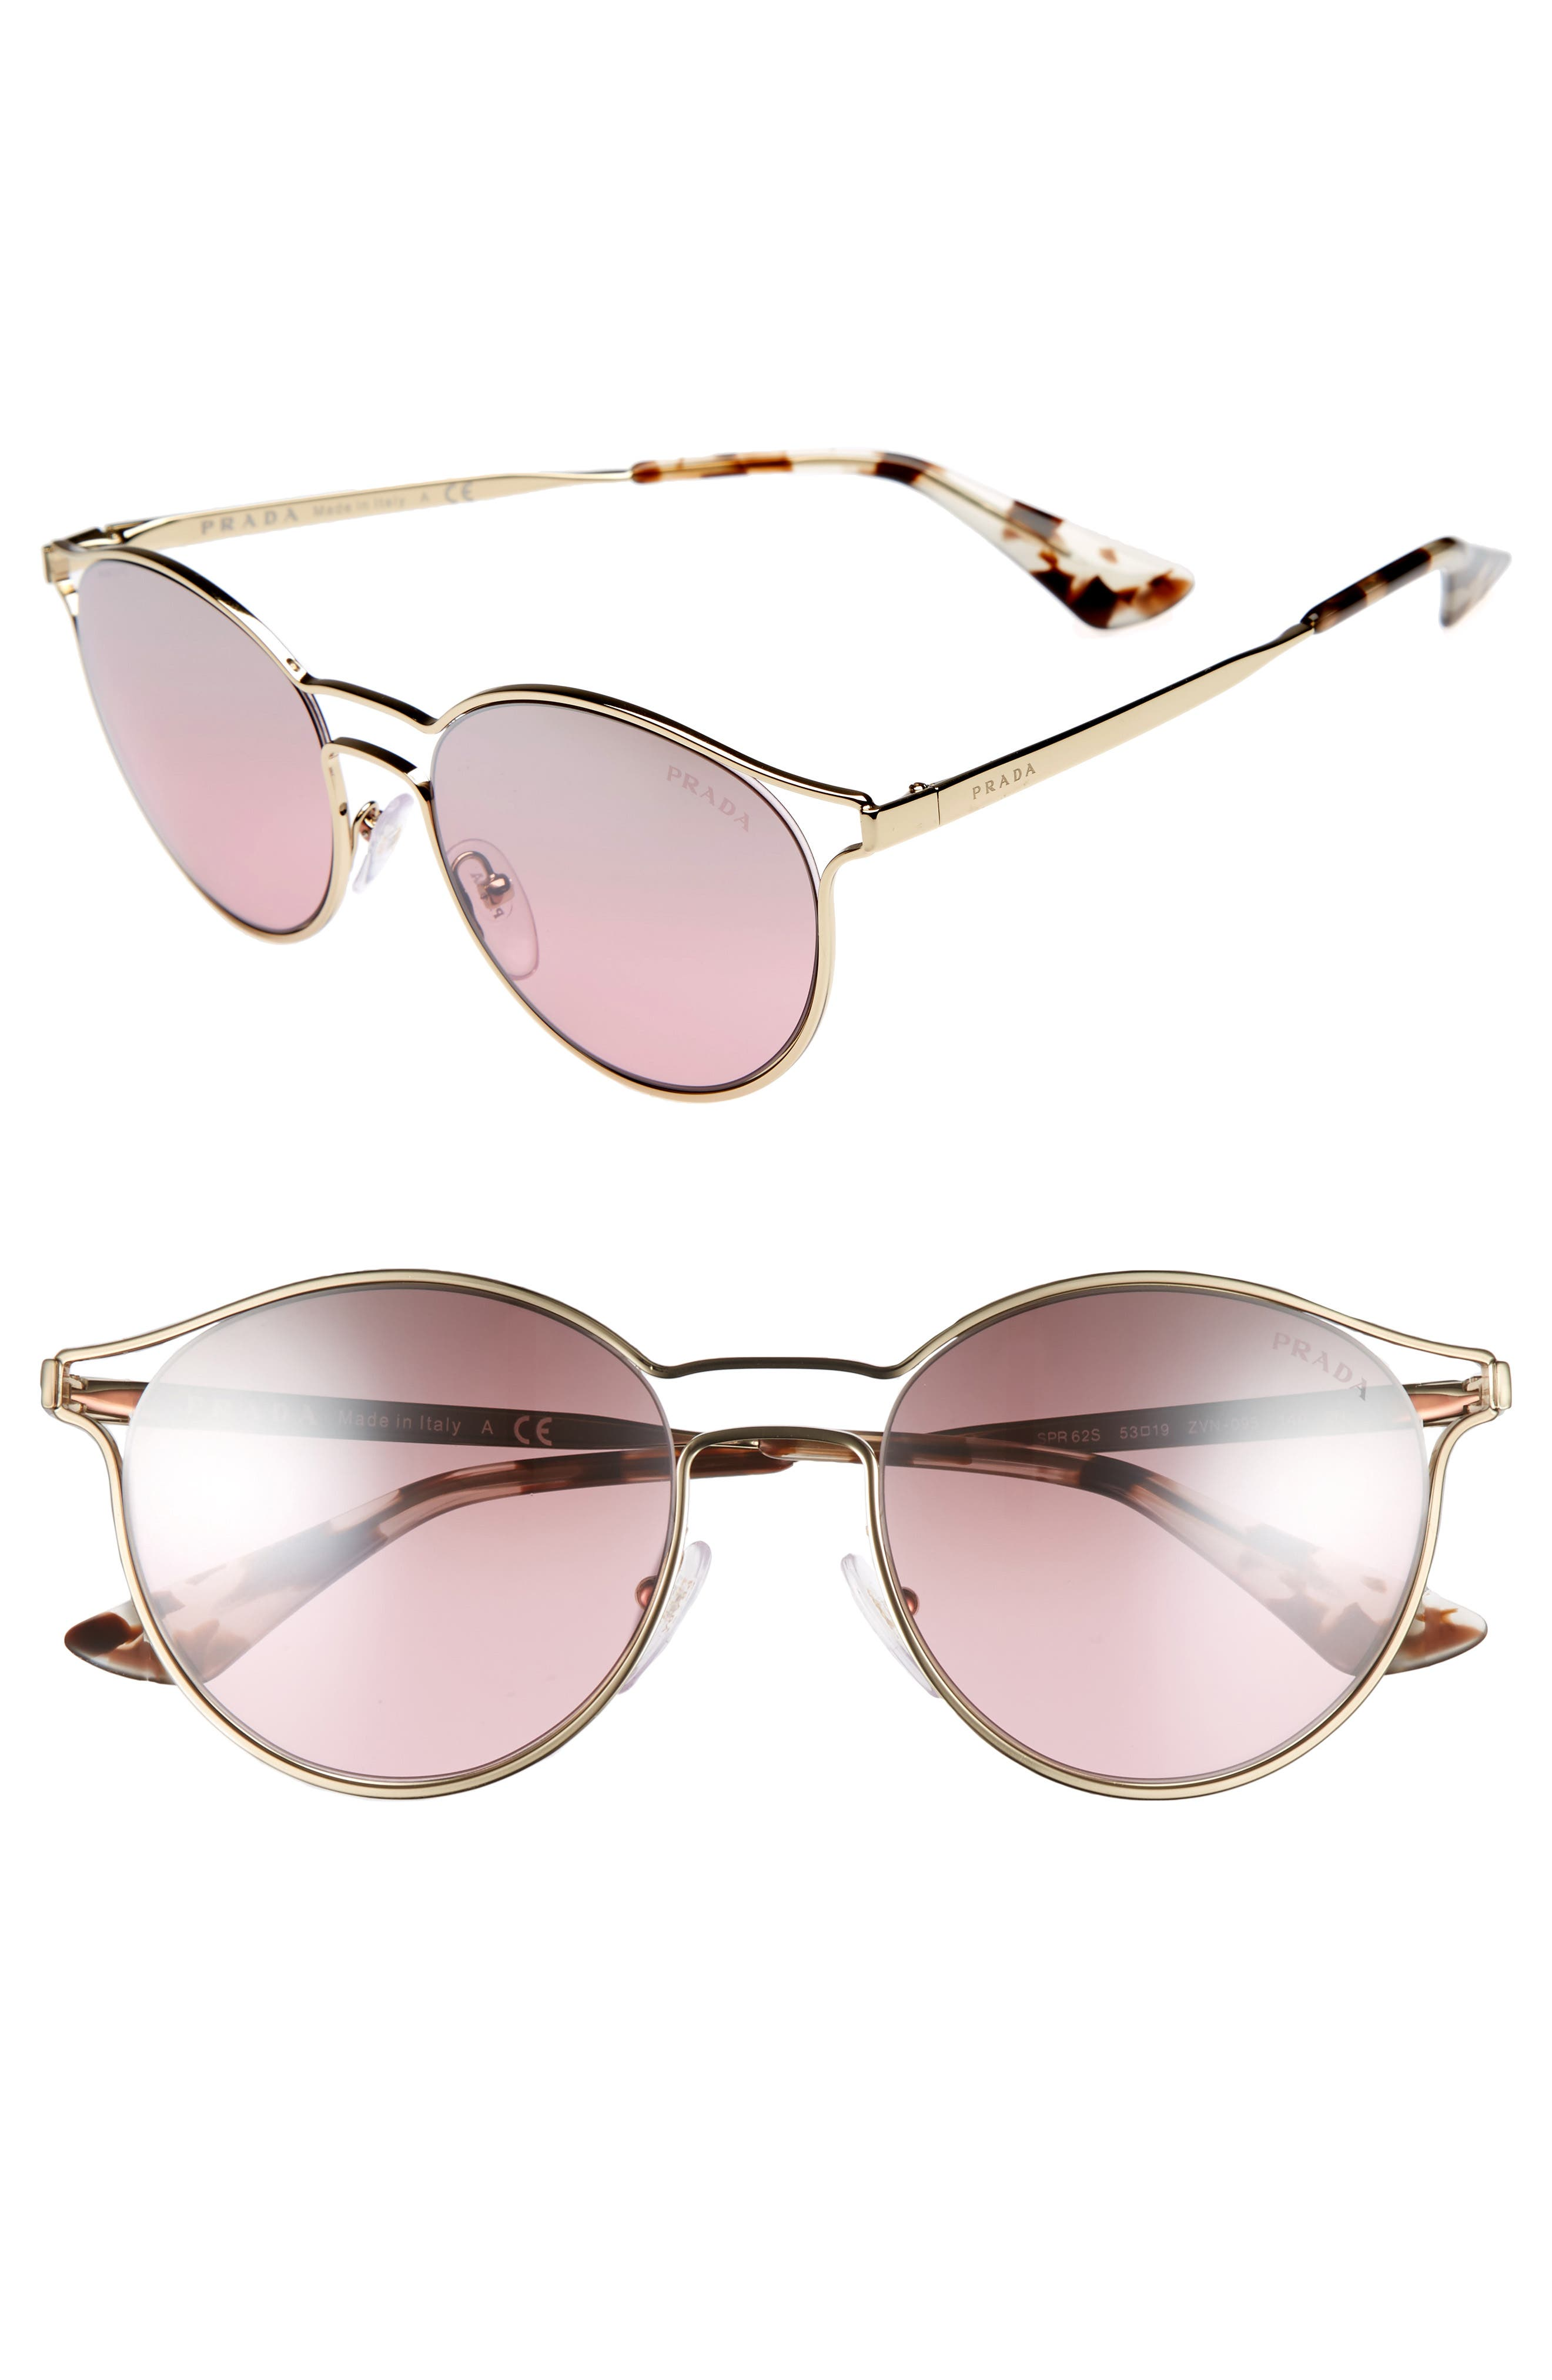 53mm Round Mirrored Sunglasses,                             Main thumbnail 1, color,                             Pale Gold